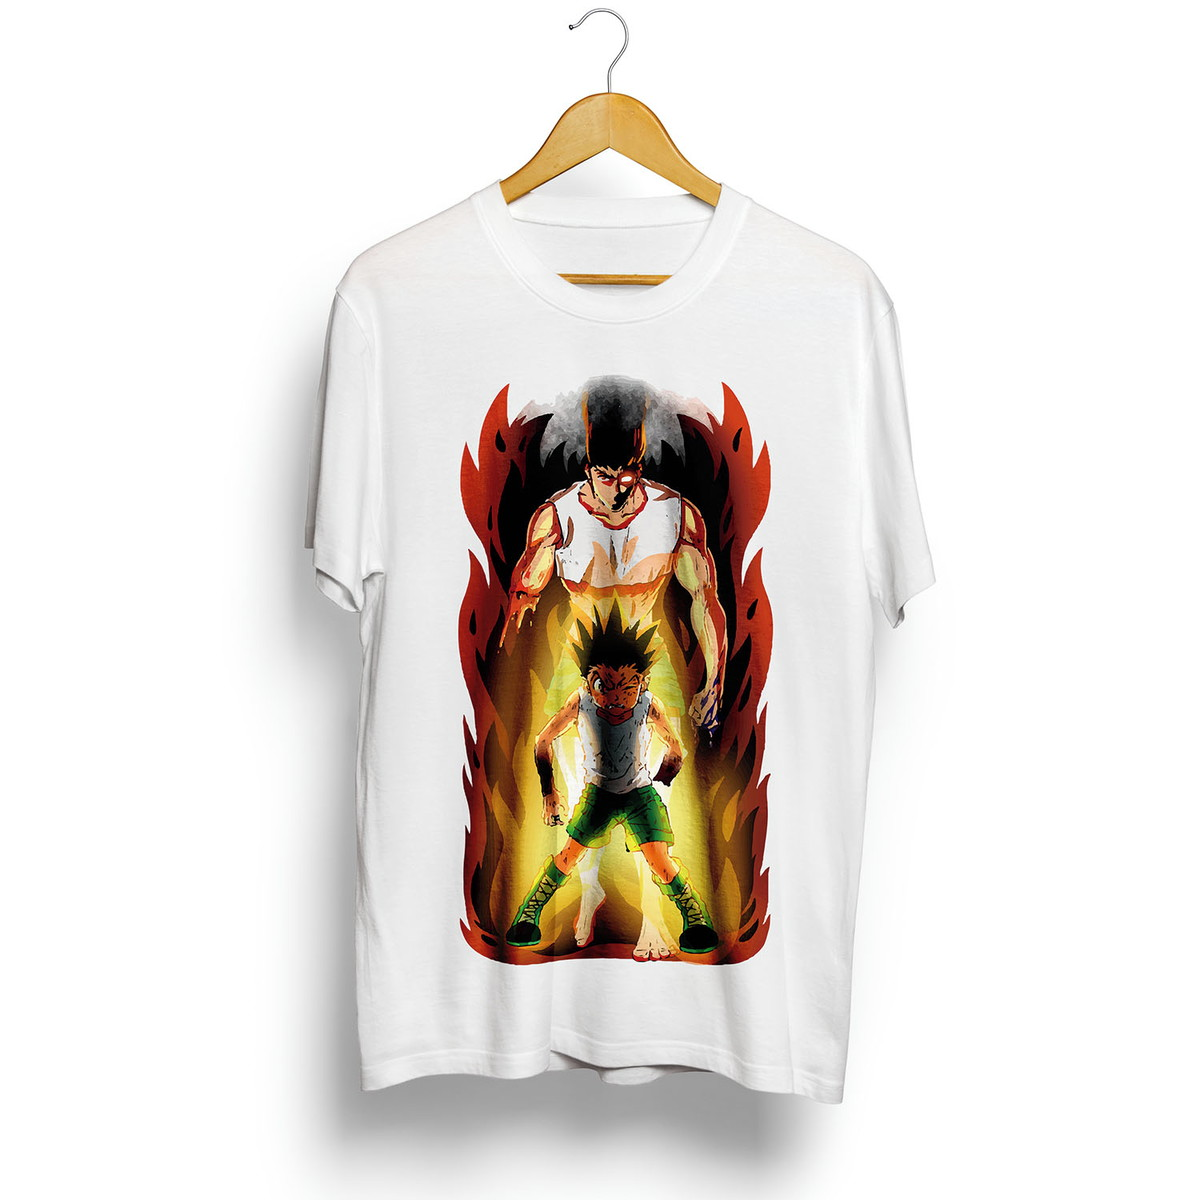 e368f924cea Camiseta Hunter X Hunter Gon Transformação Animes Geek no Elo7 ...